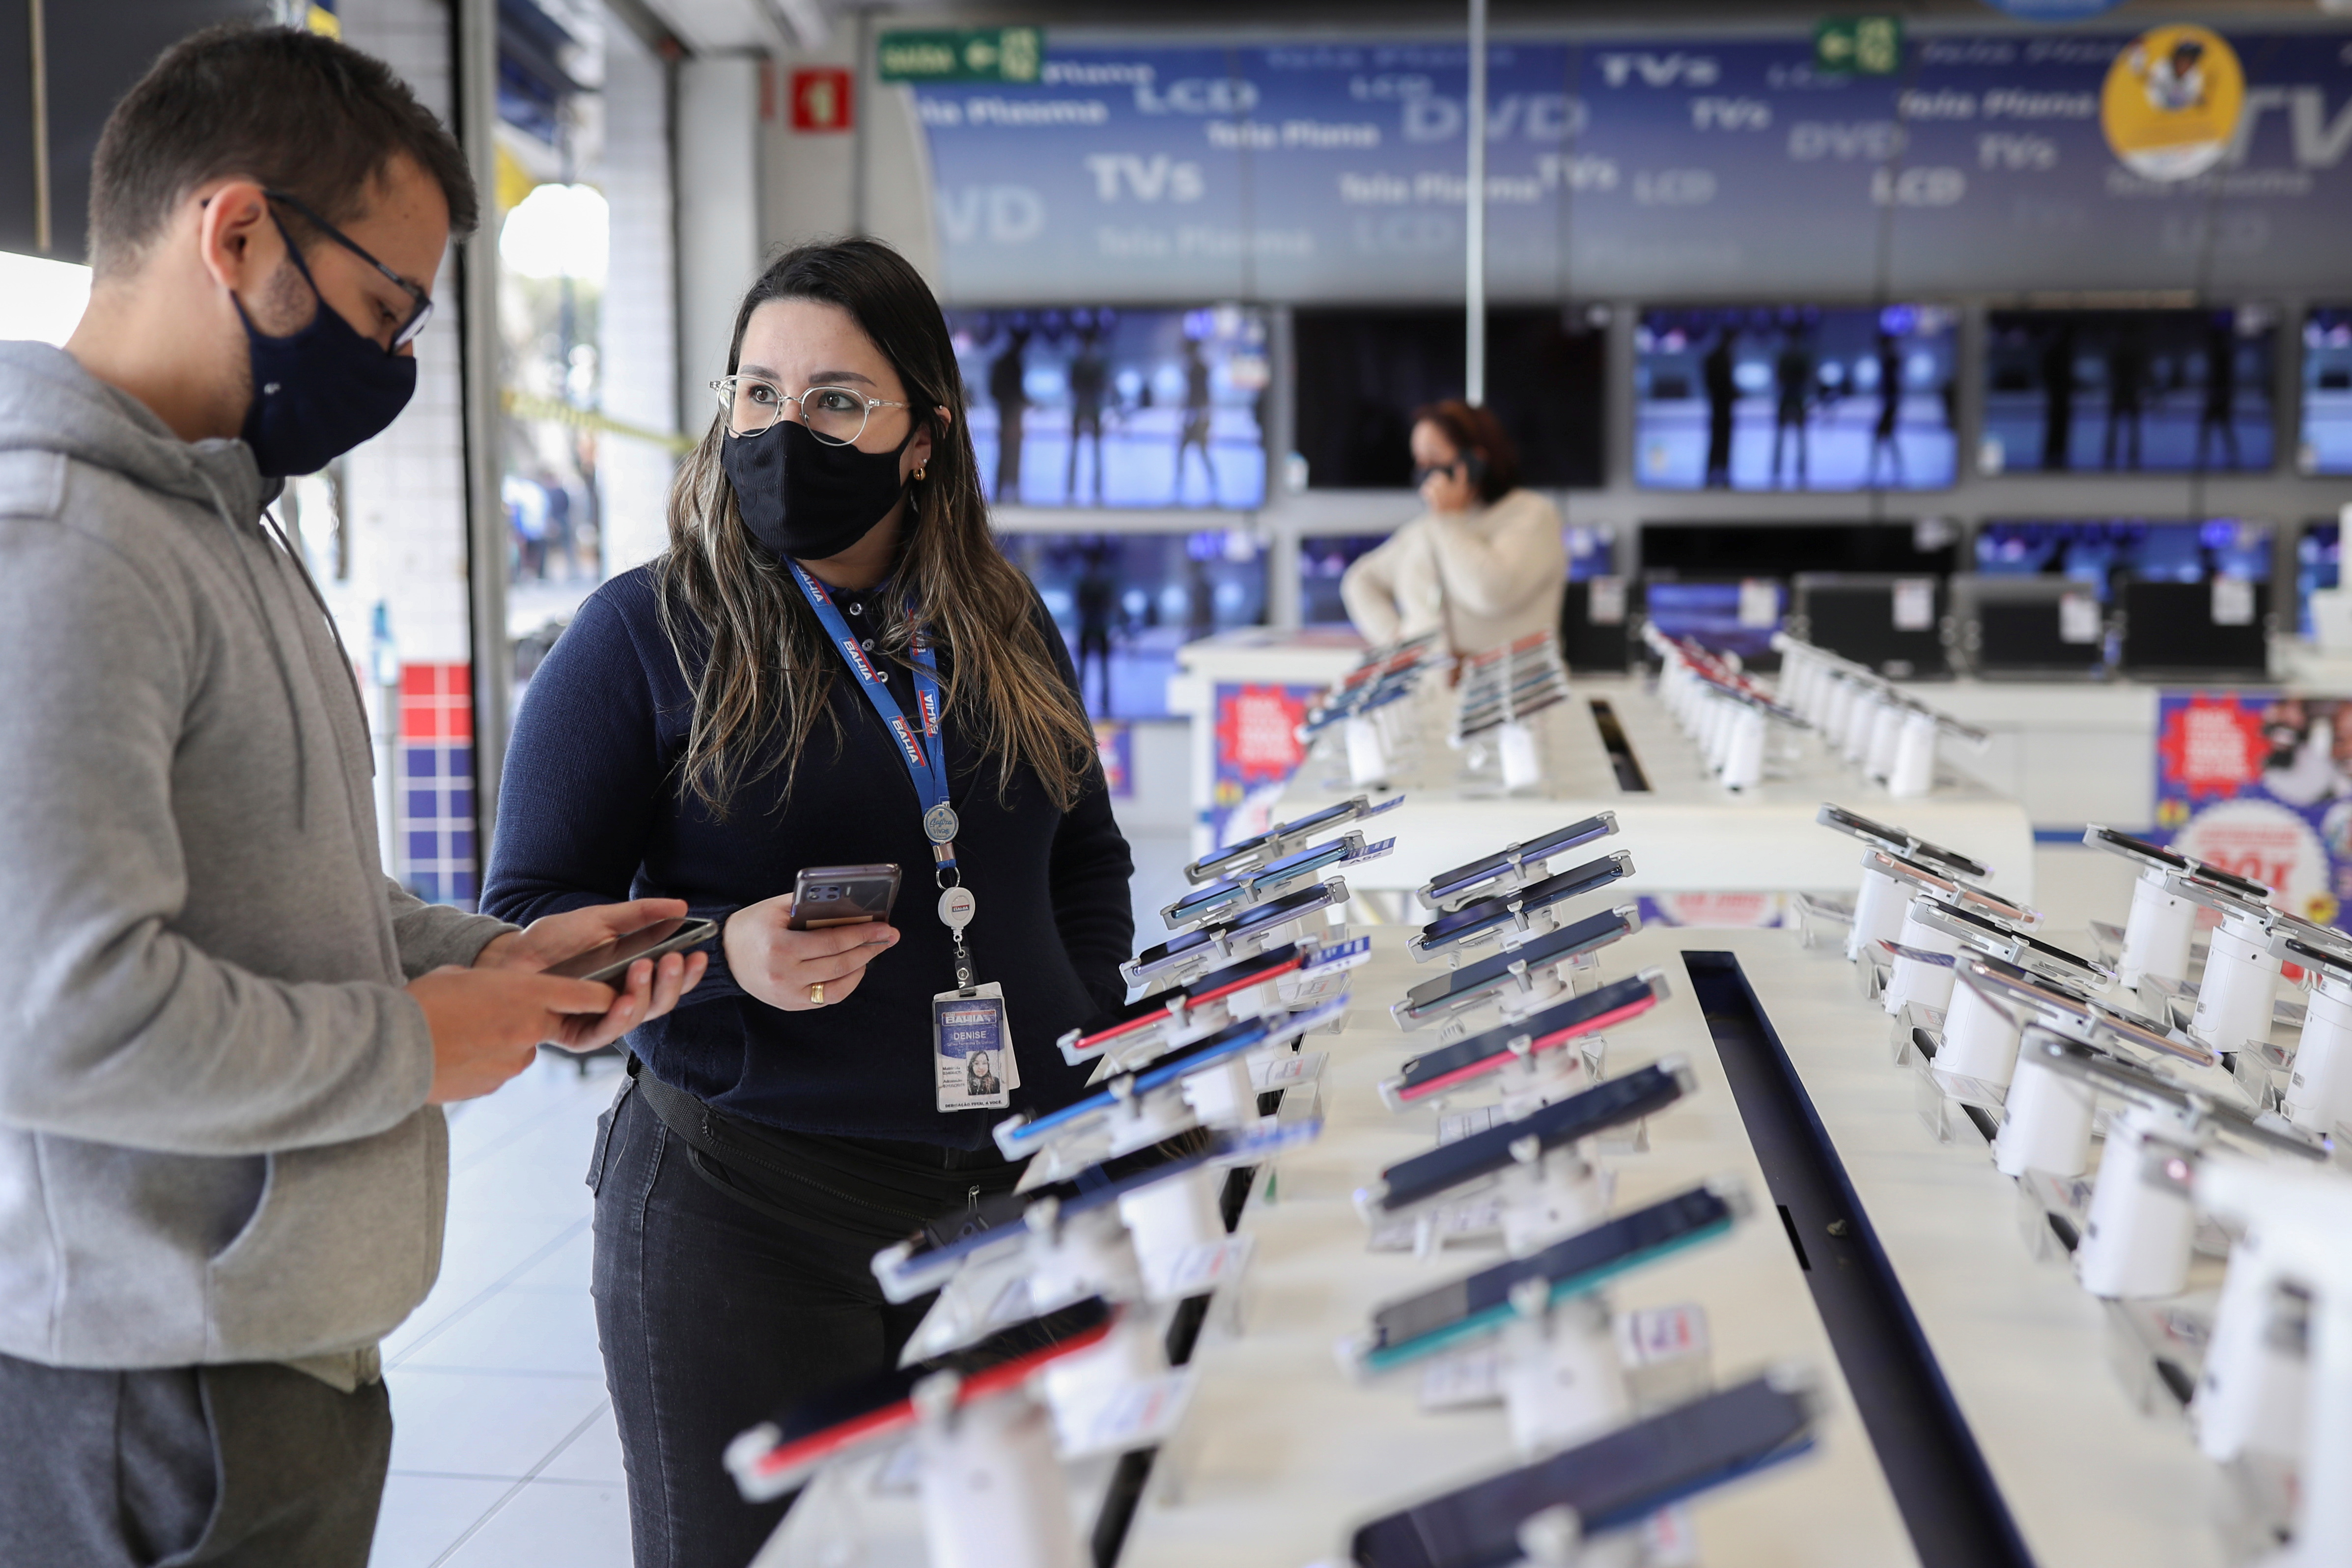 Vendor Denise Fernandes de Queiroz talks to a costumer as they enter a messaging app on their phones at a Casas Bahia store in Sao Paulo, Brazil, August 3, 2021. Picture taken August 3, 2021. REUTERS/Amanda Perobelli